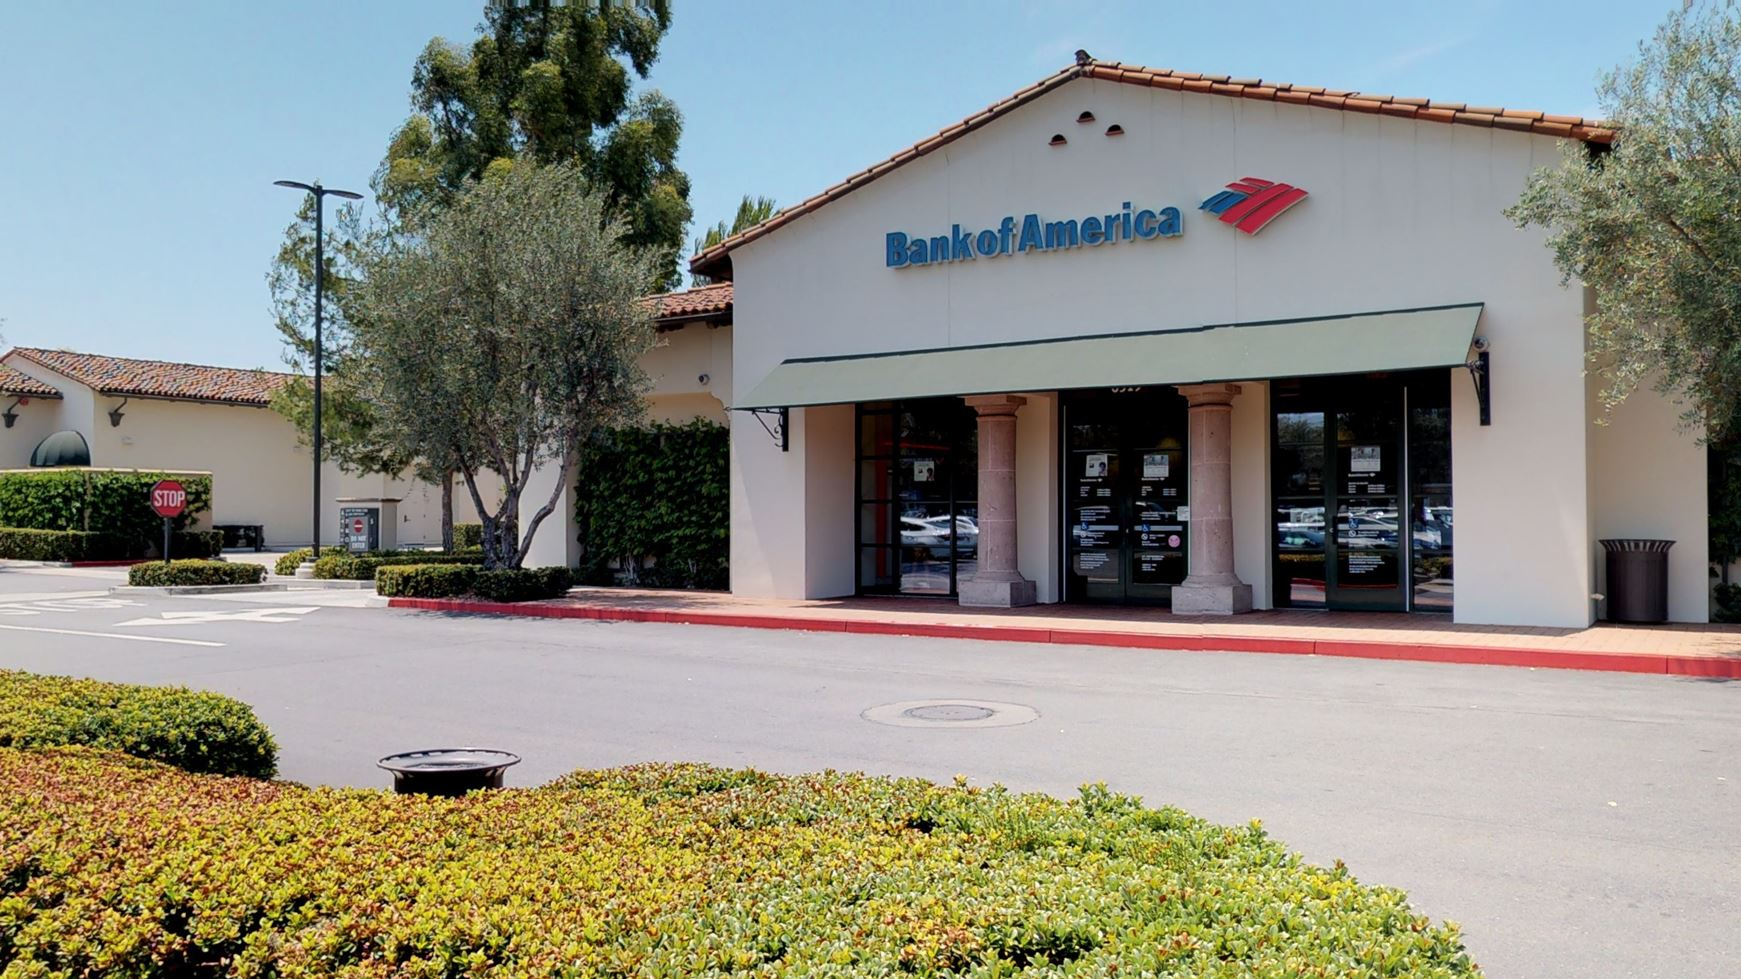 Bank of America financial center with drive-thru ATM | 6519 Quail Hill Pkwy, Irvine, CA 92603